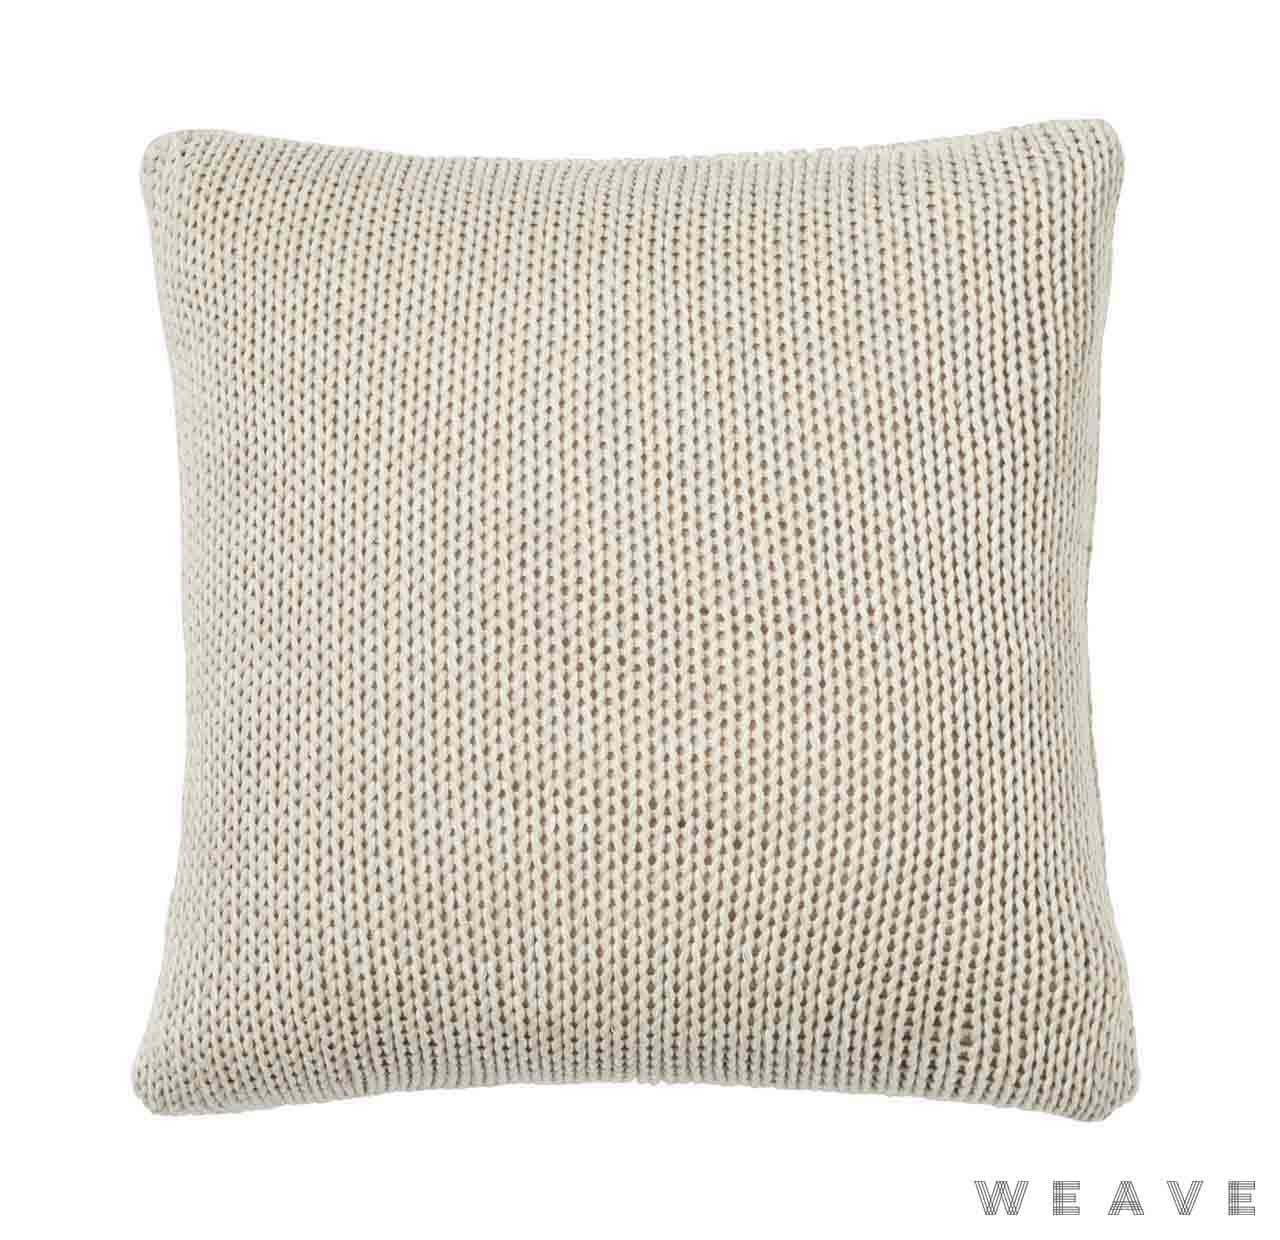 Weave - Monterey Cushion - Sandstorm (Pack of 2)  | Cusion Fabric - Beige, Weave